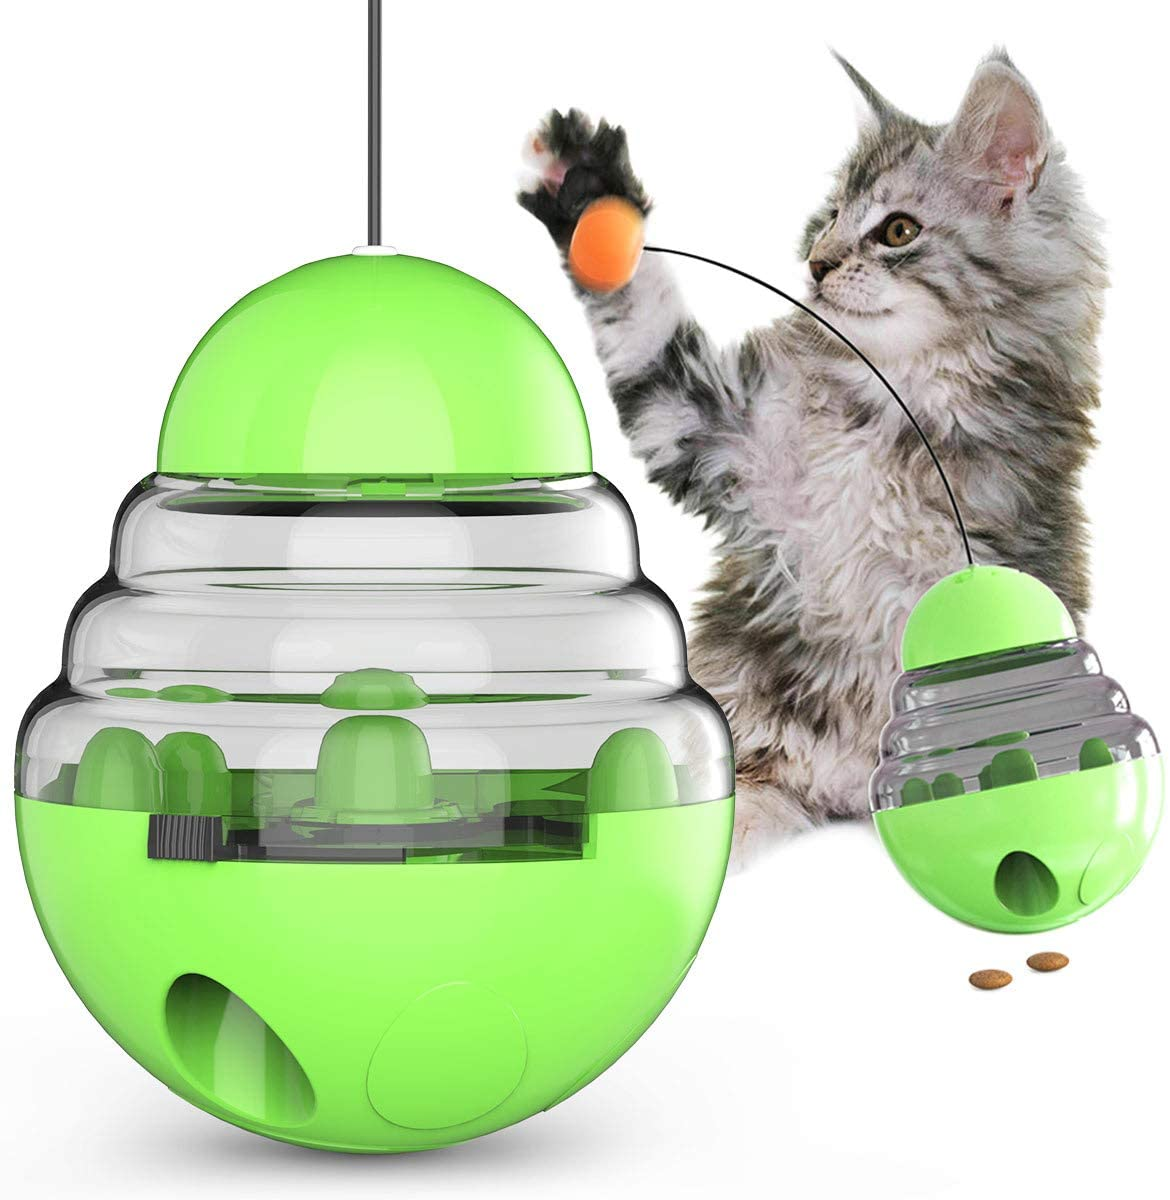 USWT Cat Toy Ball Cat Toys Interactive, Cat Food Dispensing Ball Cat Puzzle Toy Interactive with Tumbler Toy